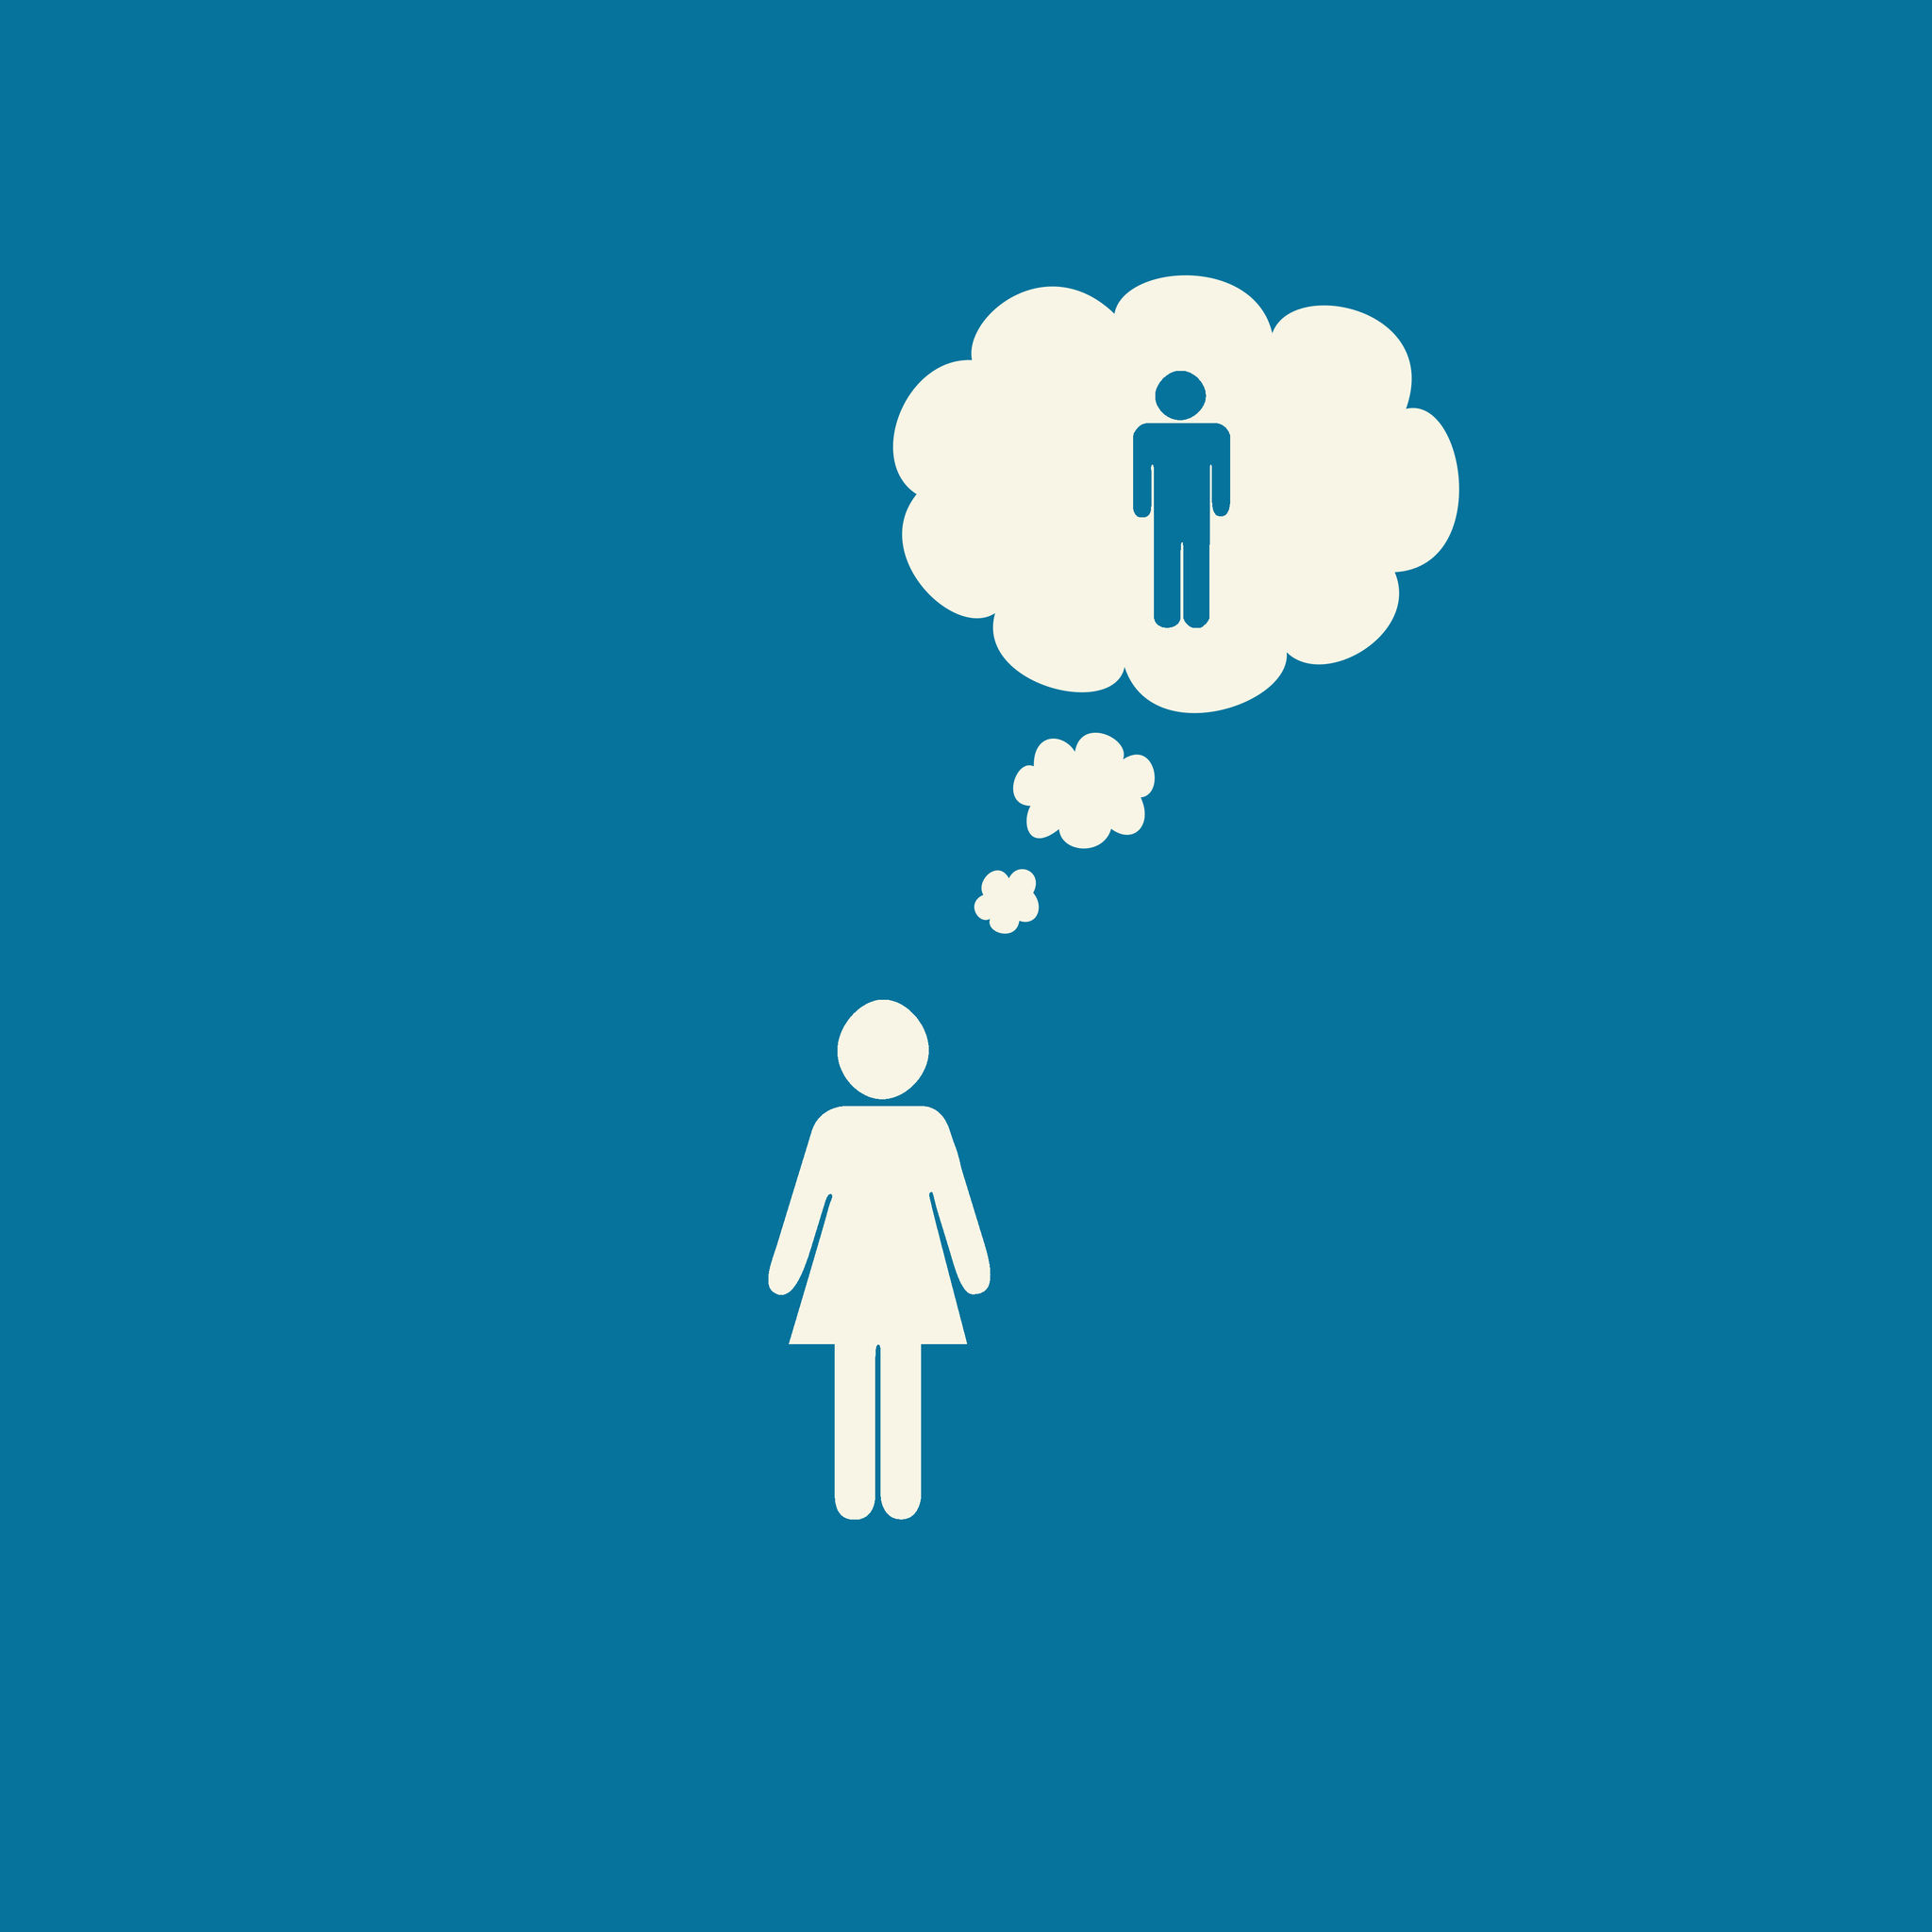 63826020 - transgender female to male graphic on blue background.